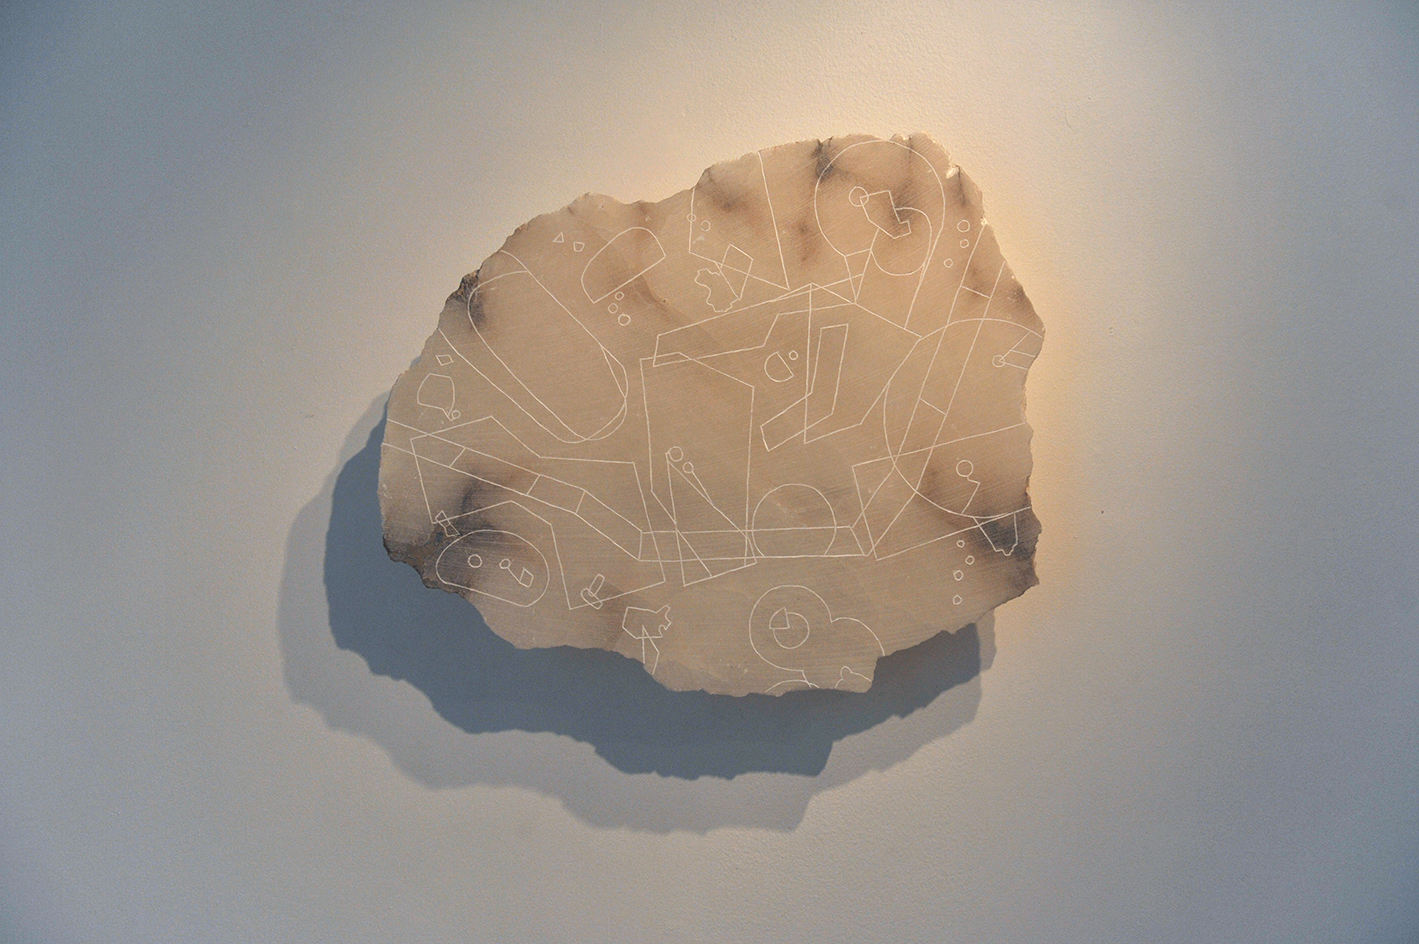 Low Flying Chart #1,  2016, carved alabaster slab depicting off-limits area of the Ligurian sky in Italy